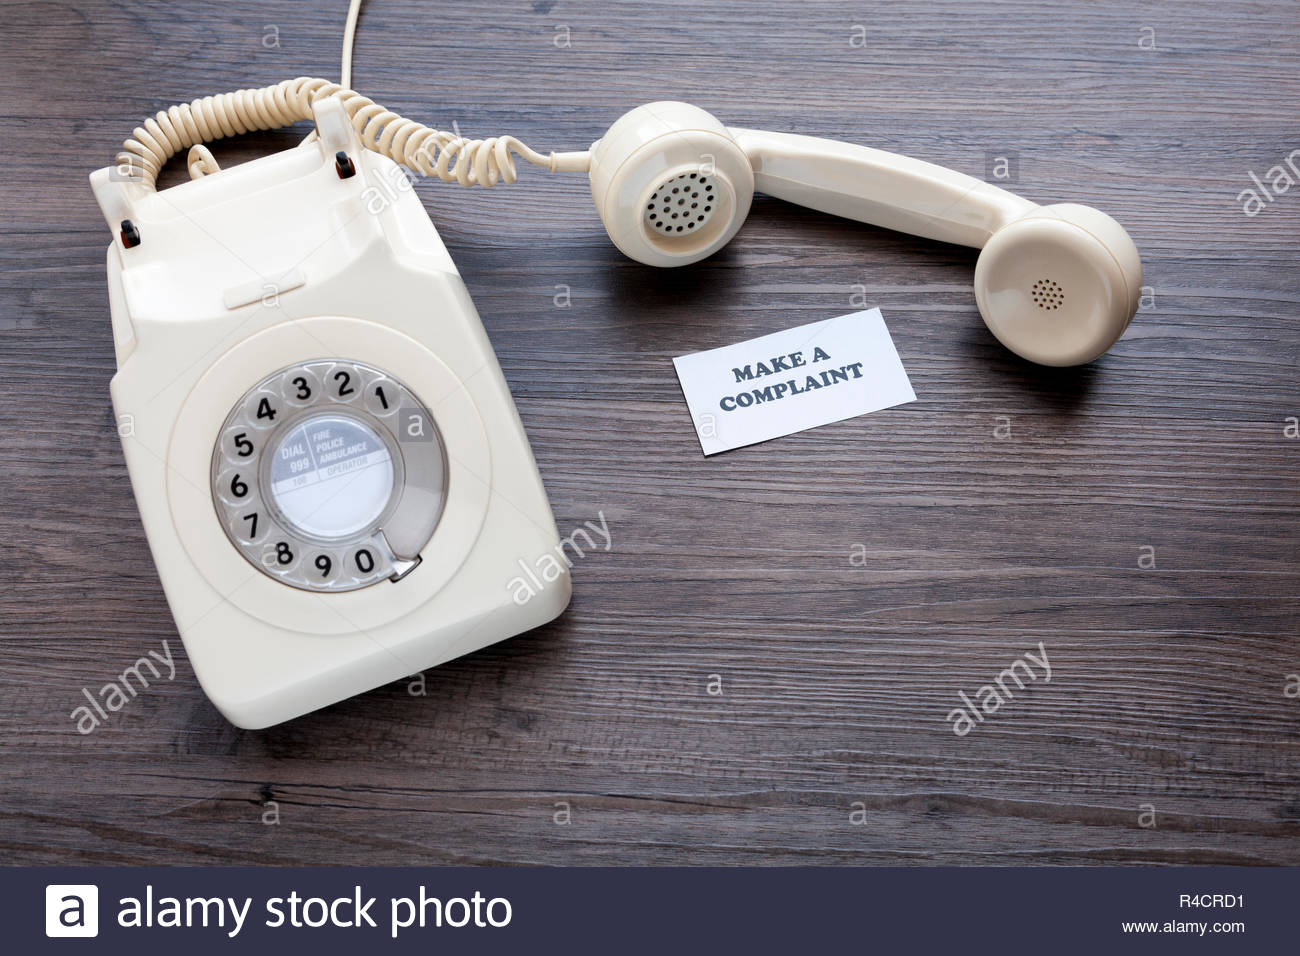 Retro telephone with note - Make A Complaint - Stock Image